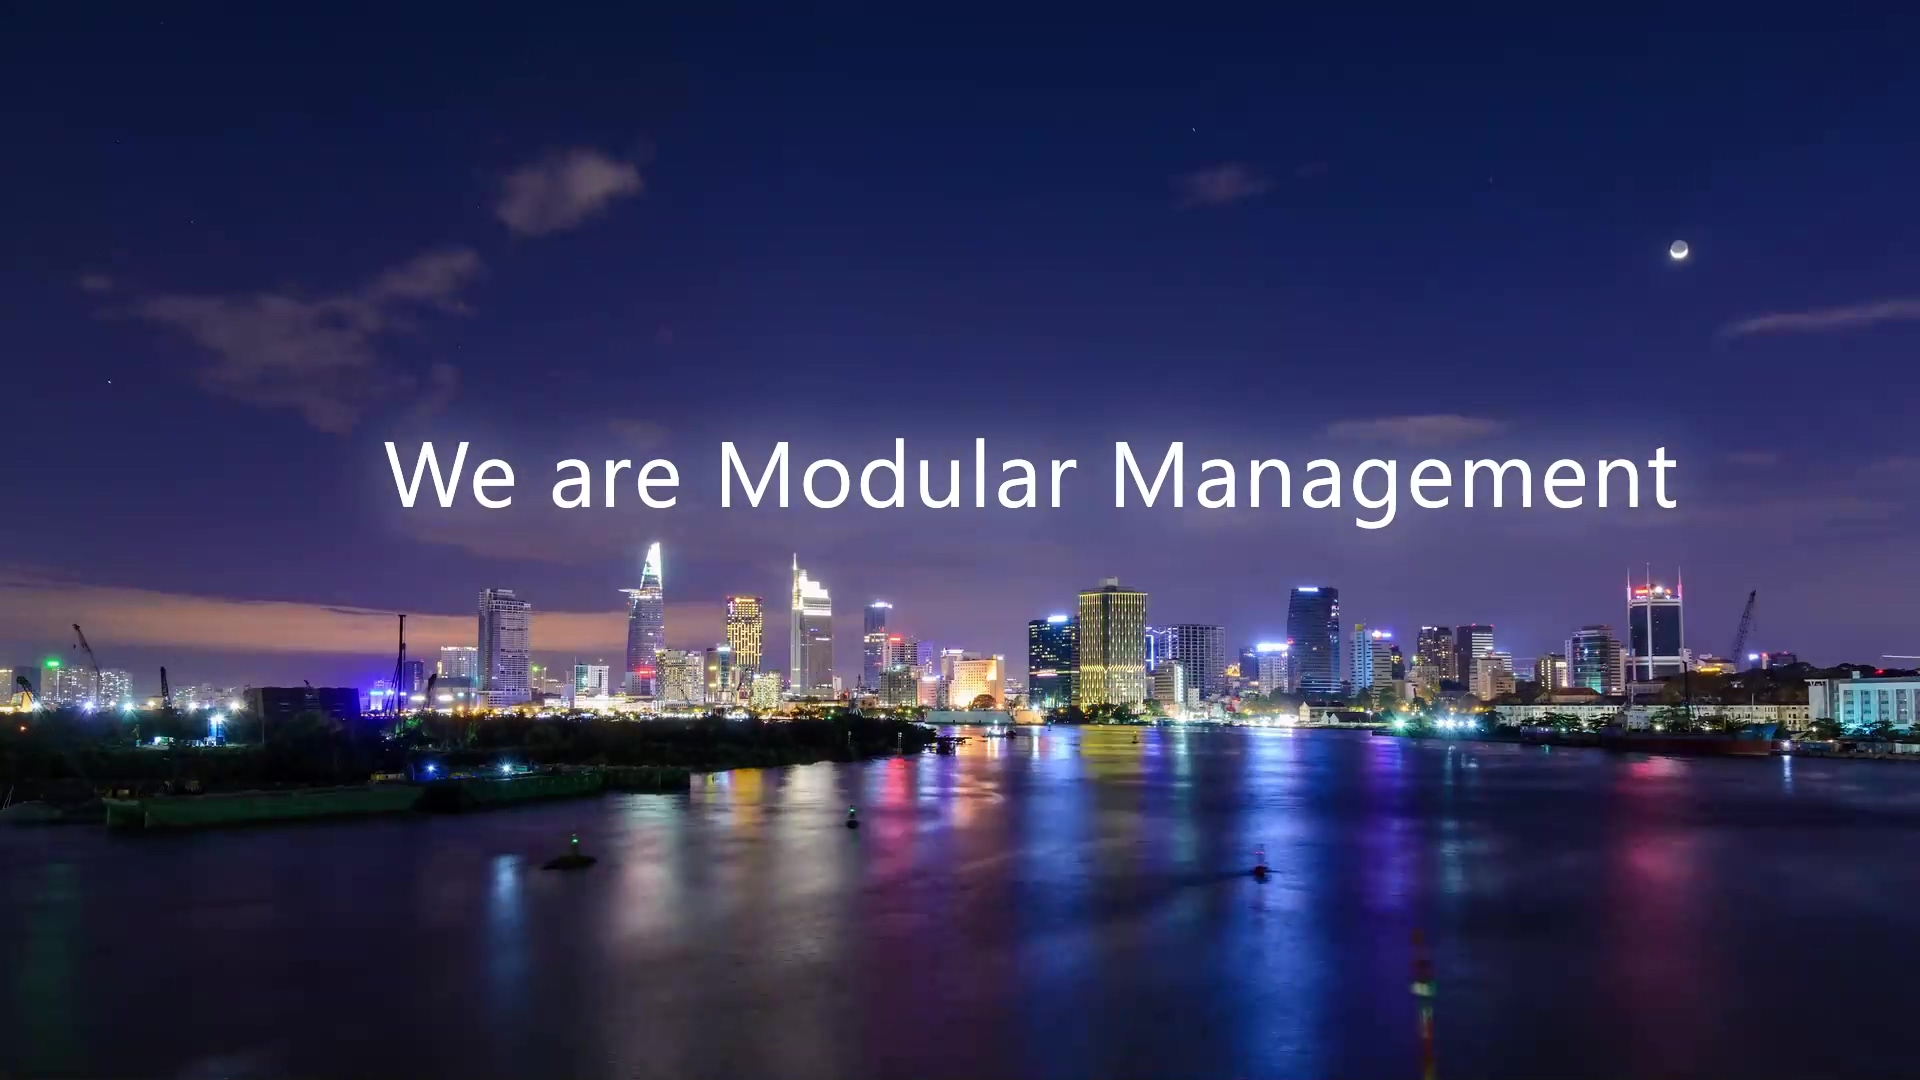 Modular Management - Pioneers of Modularity since 1996